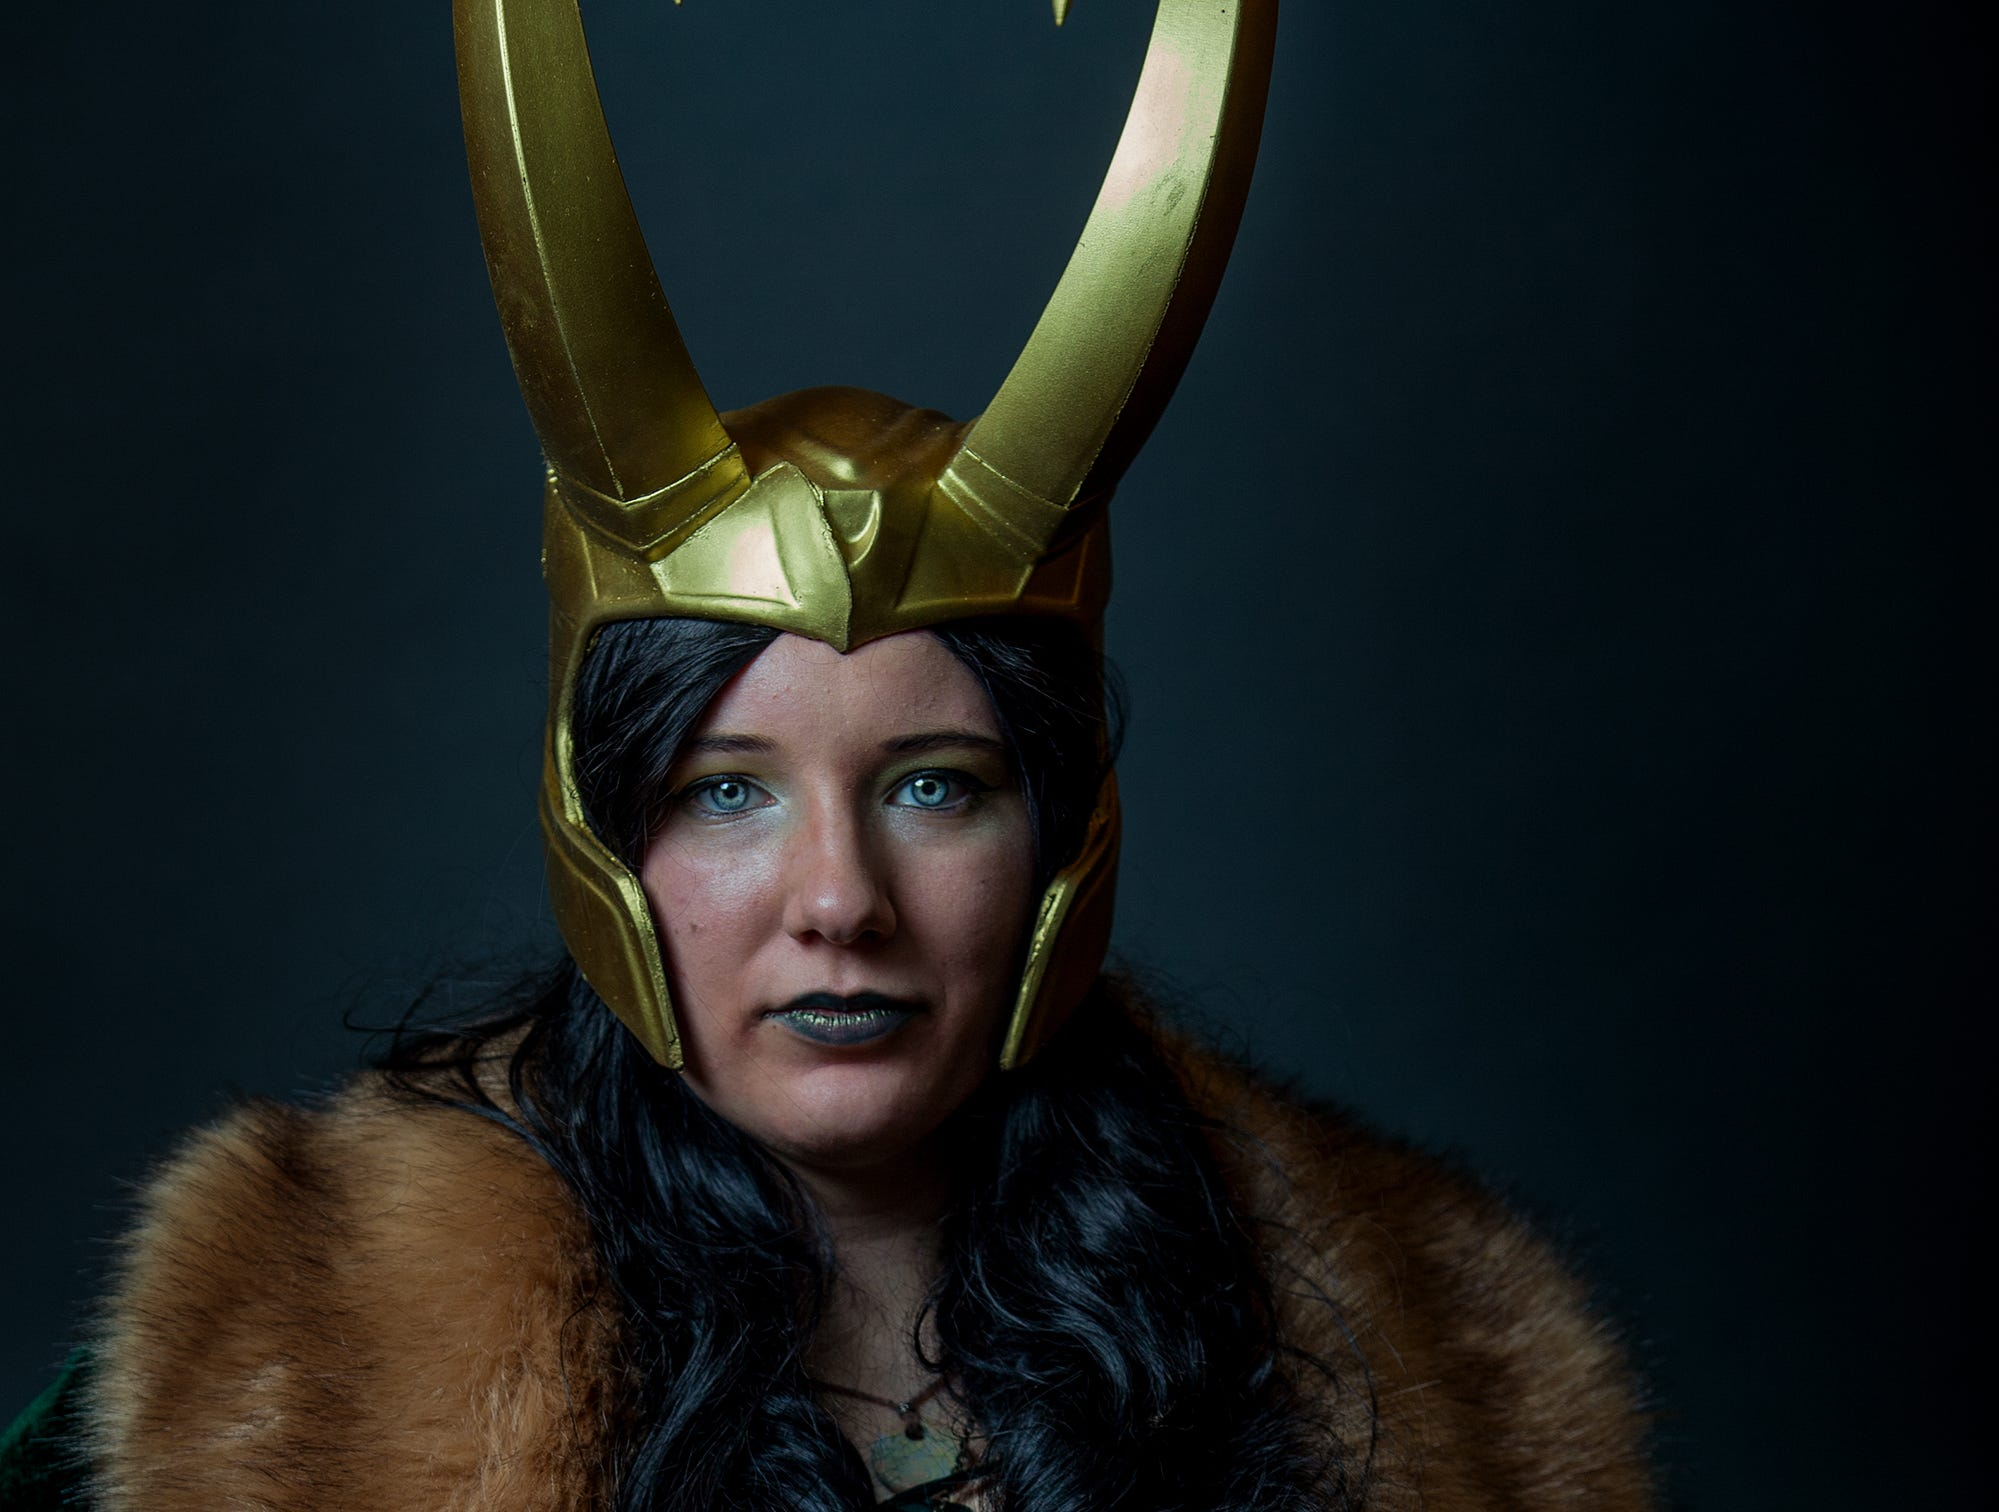 Cydni poses as Lady Loki for the Louisville Supercon at the Kentucky International Convention Center on Friday, Nov. 30, 2018.